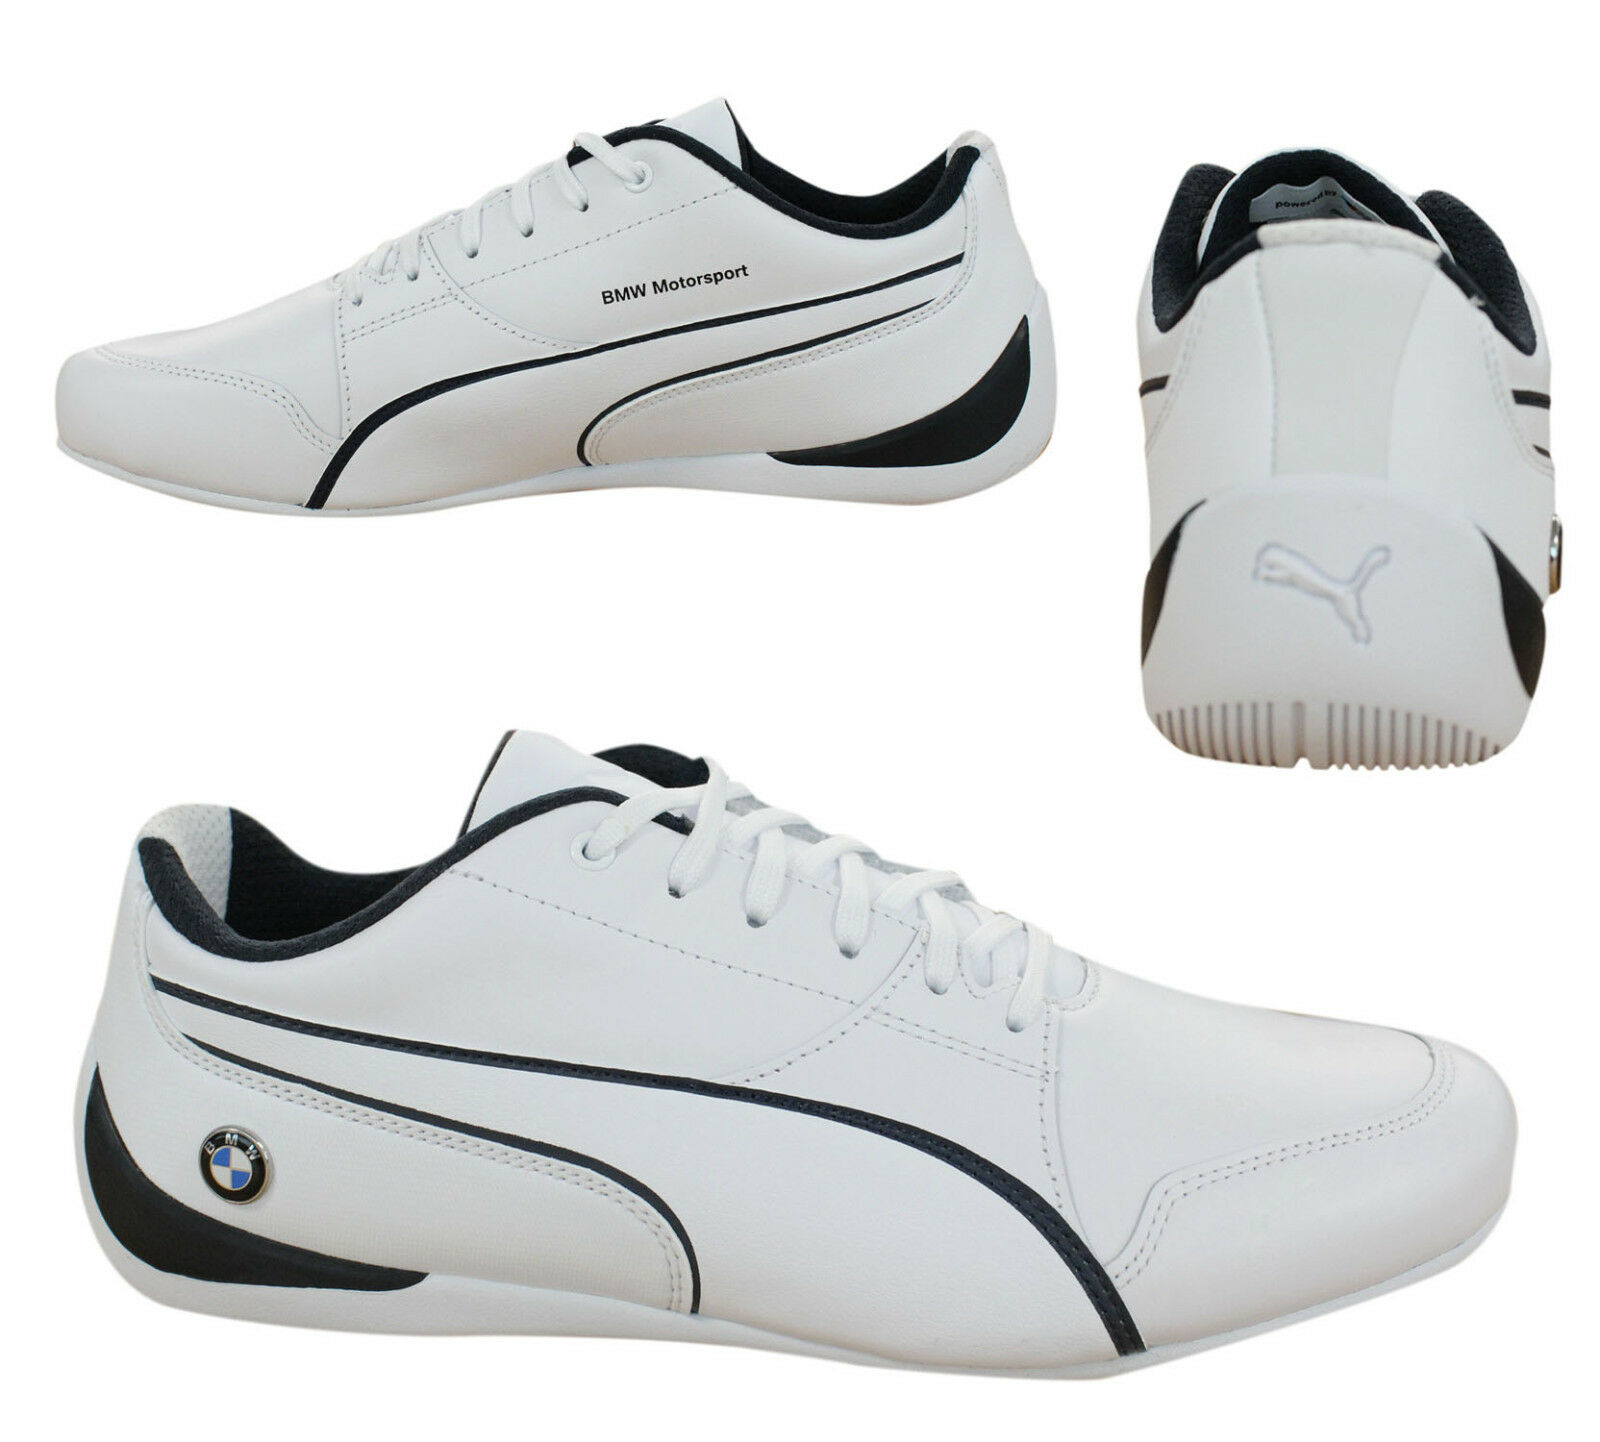 9c331d979f92 Puma BMW Motorsport Drift Cat 7 Lace Up Mens Trainers White 305986 ...